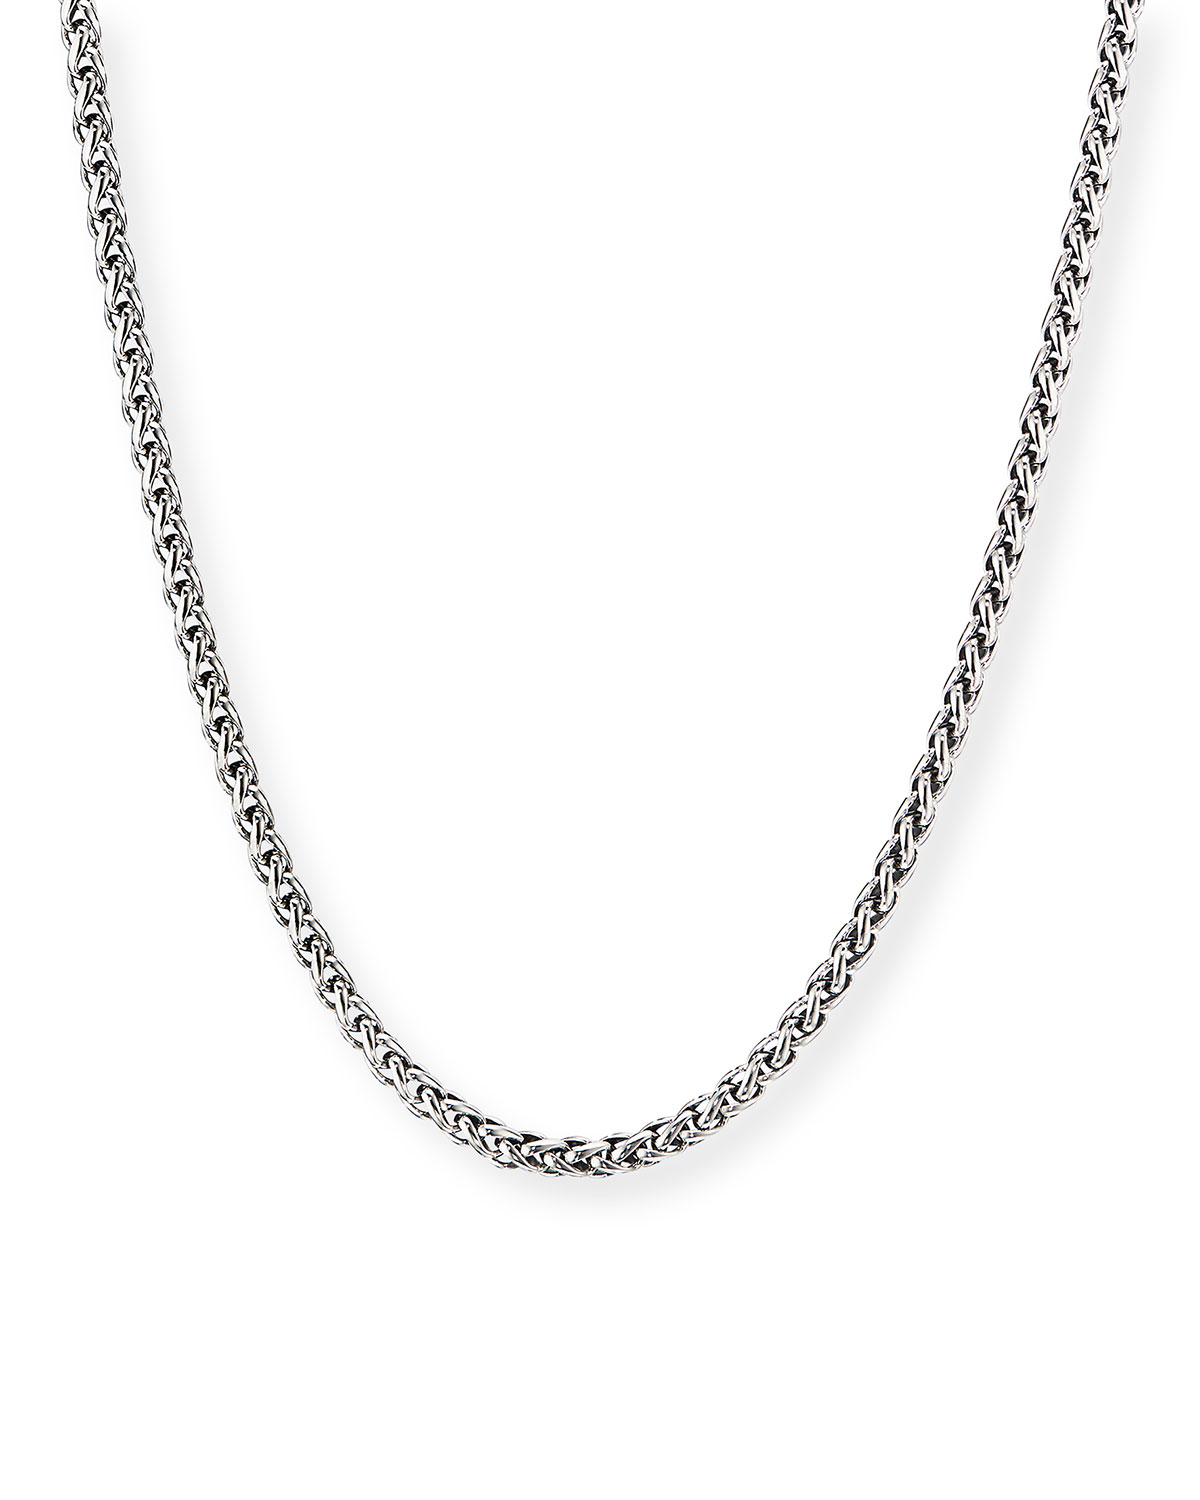 Men's 4mm Sterling Silver Wheat Chain Necklace